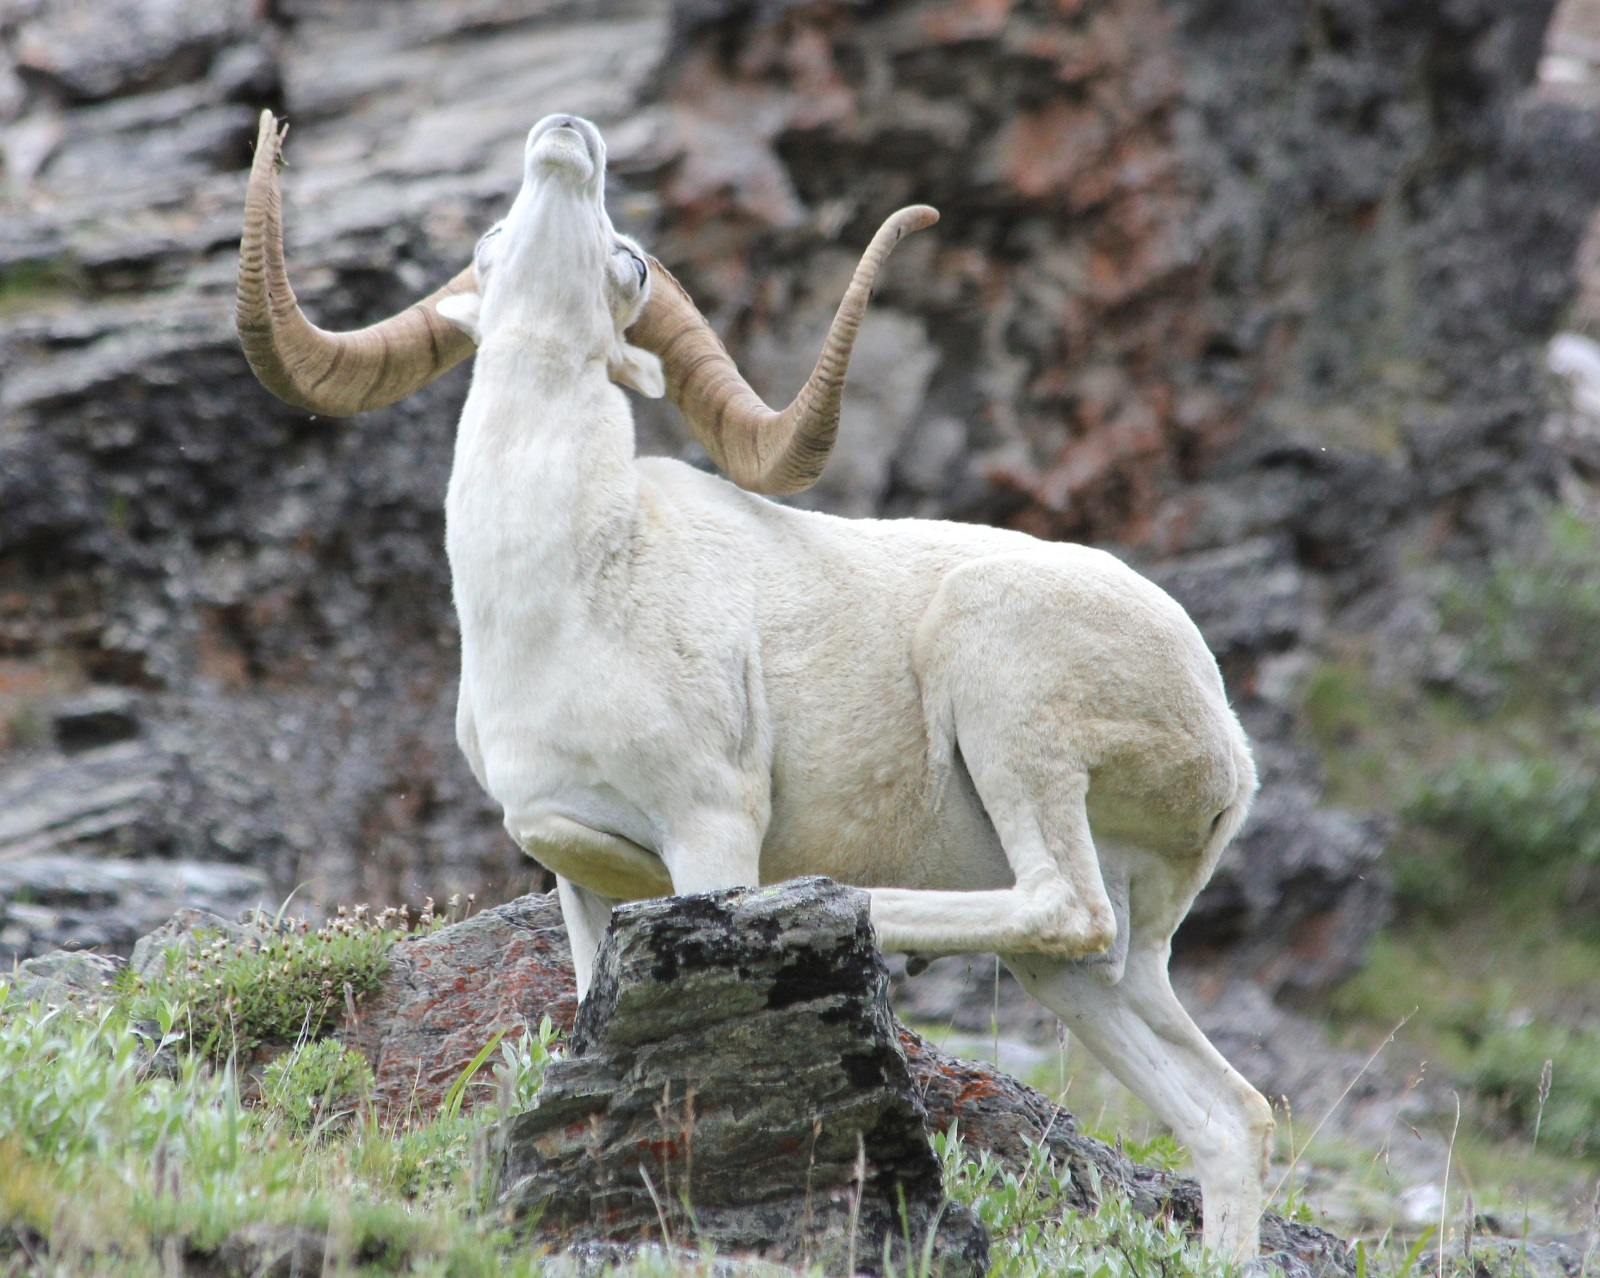 ram with its head reared back